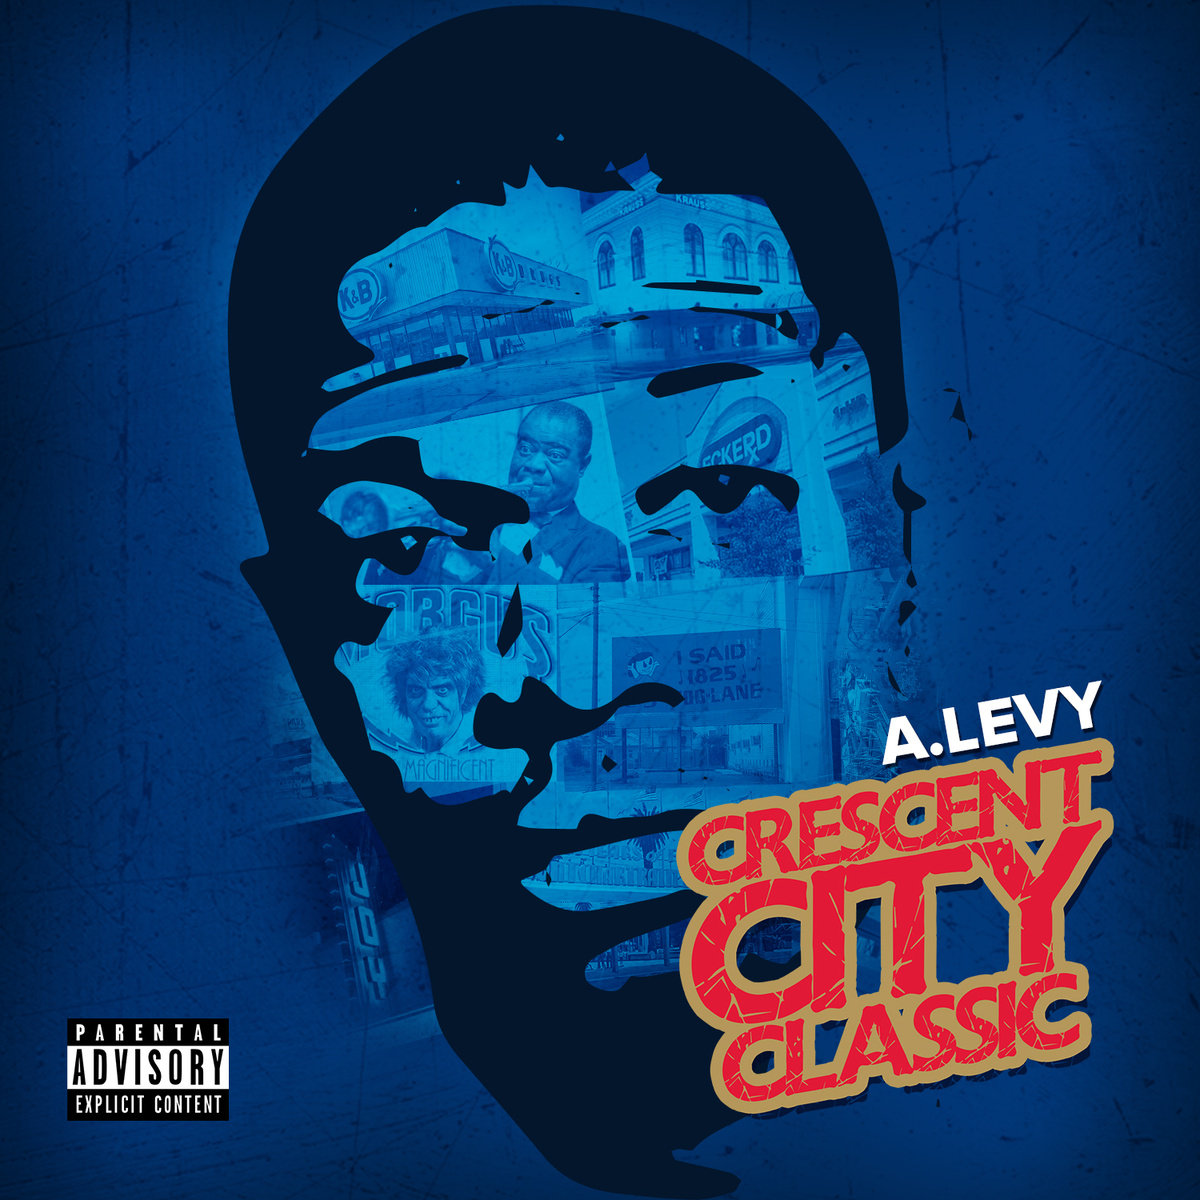 A.Levy – Crescent City Classic